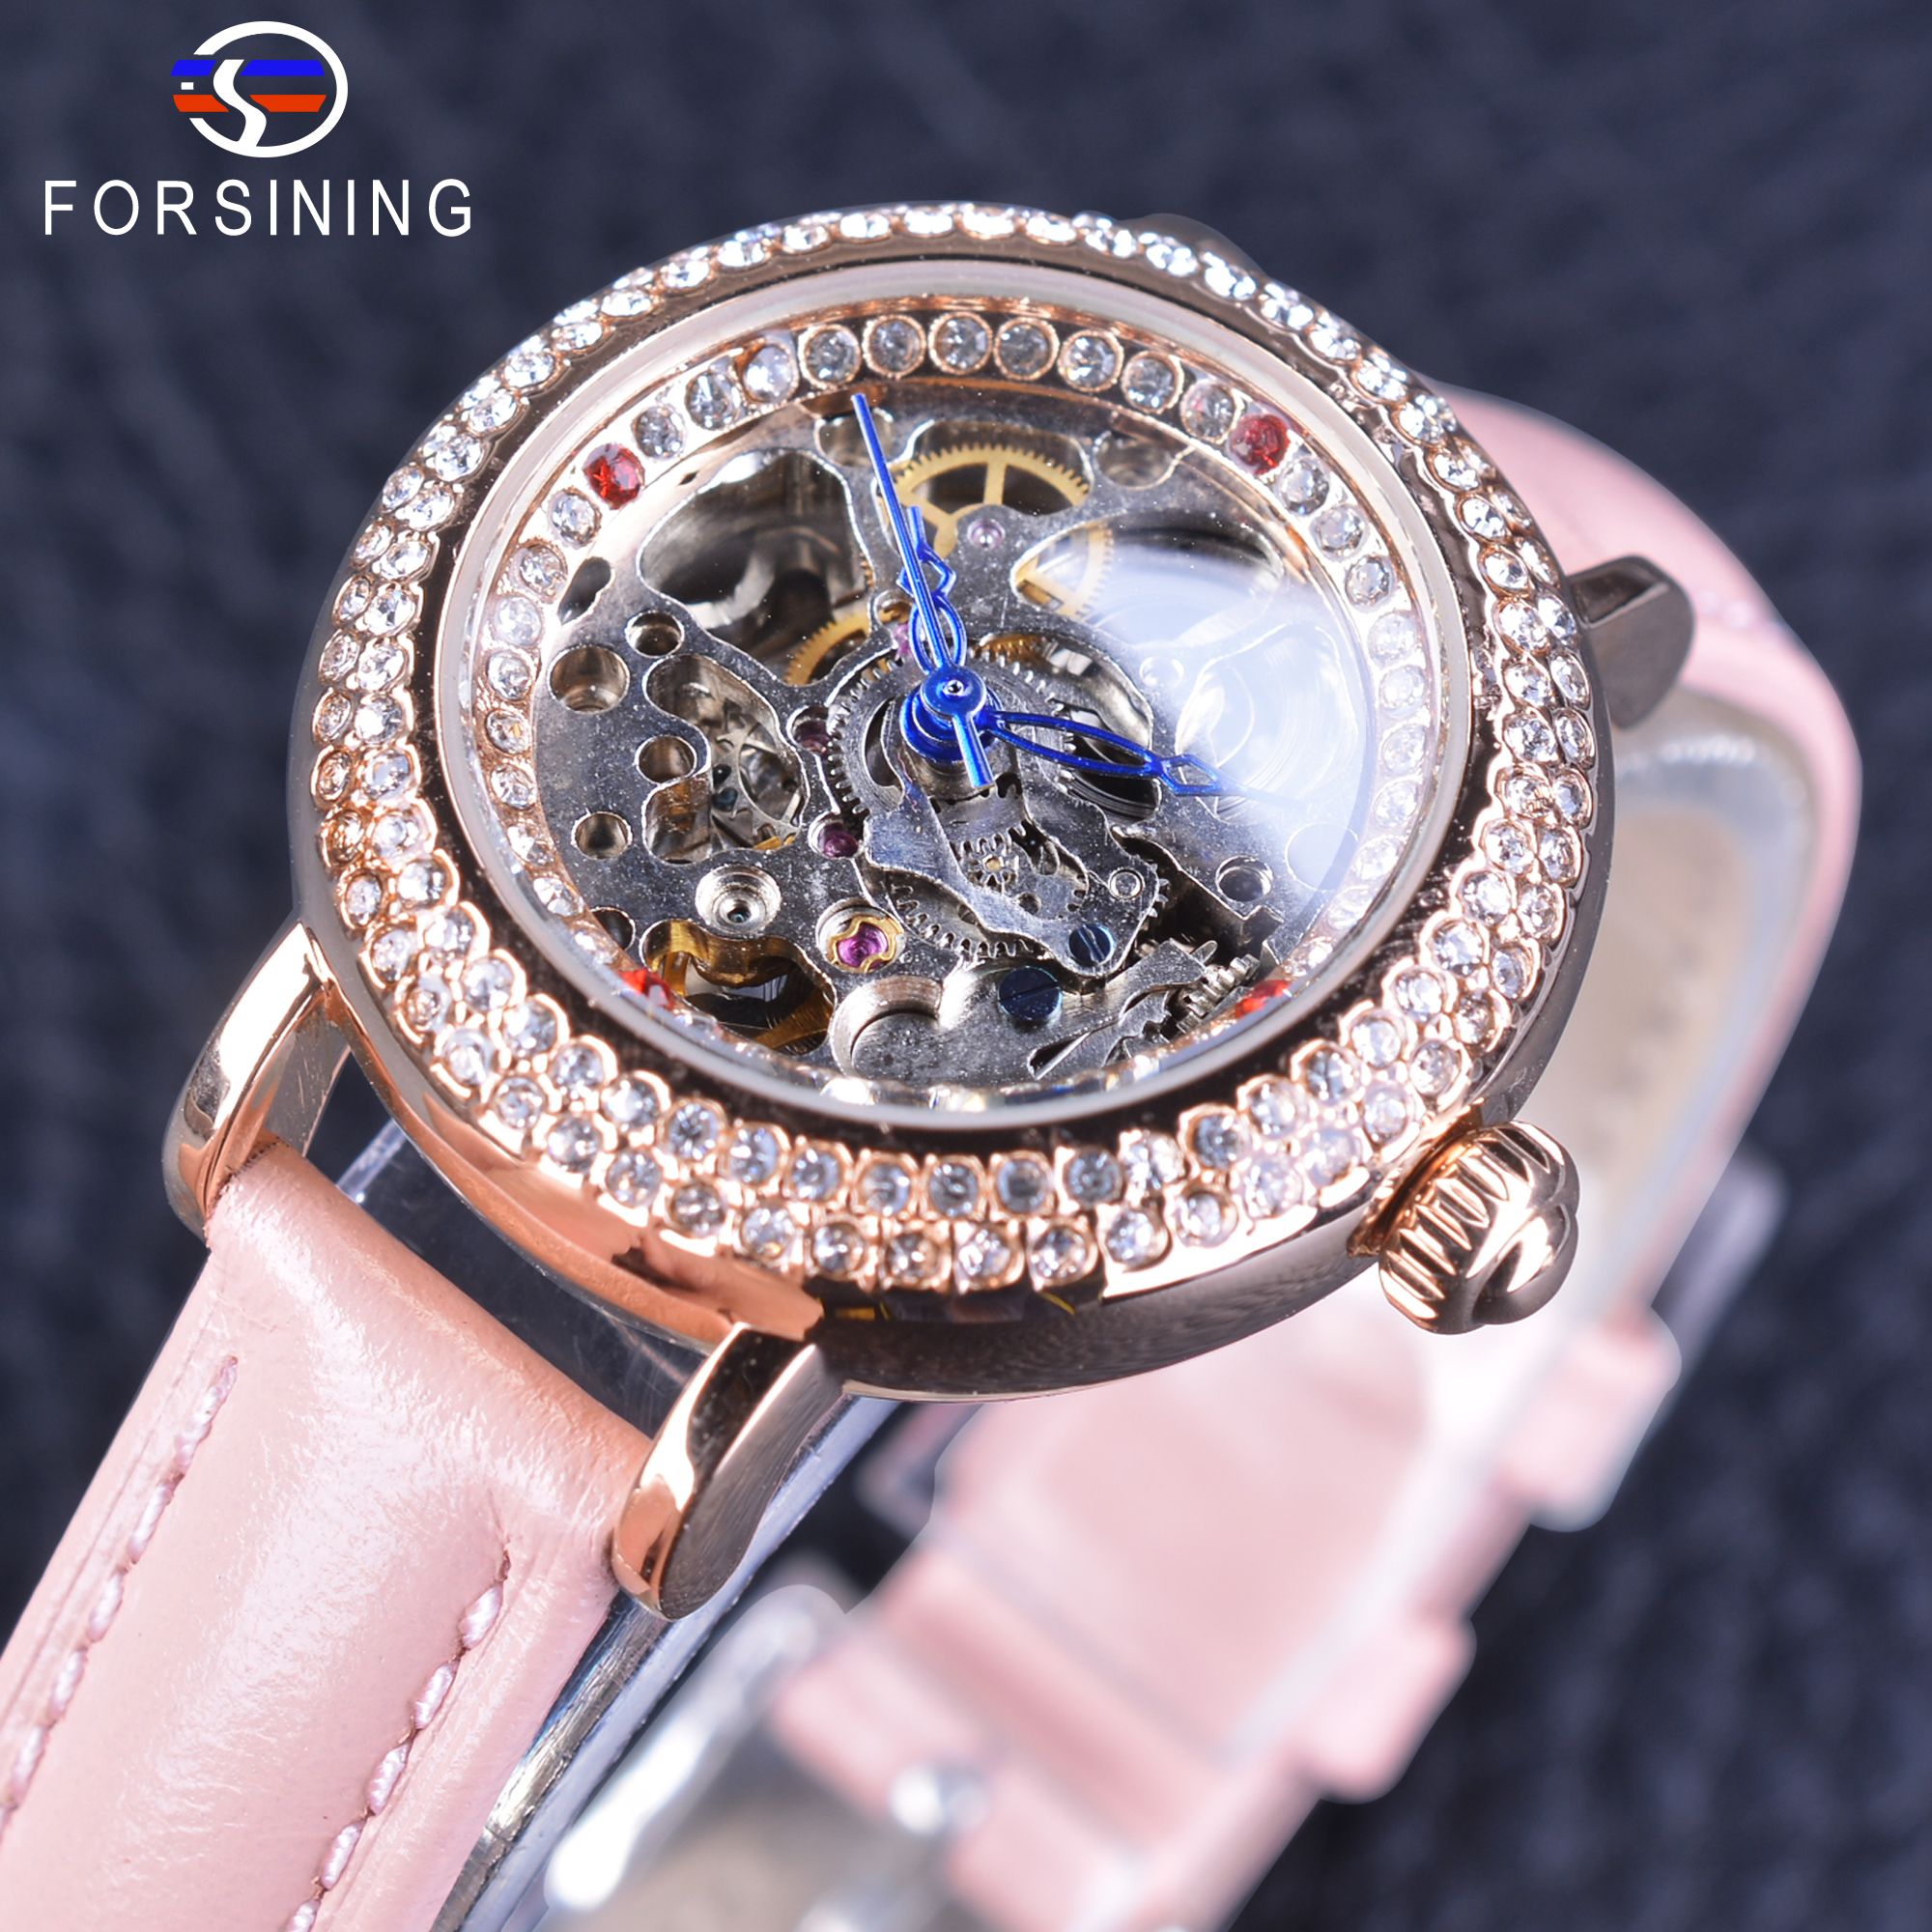 Forsining Women Fashion Pink Genuine Leather Strap Lady Geneva Diamond Skeleton Display Casual Watch Waterproof Automatic Watch<br>